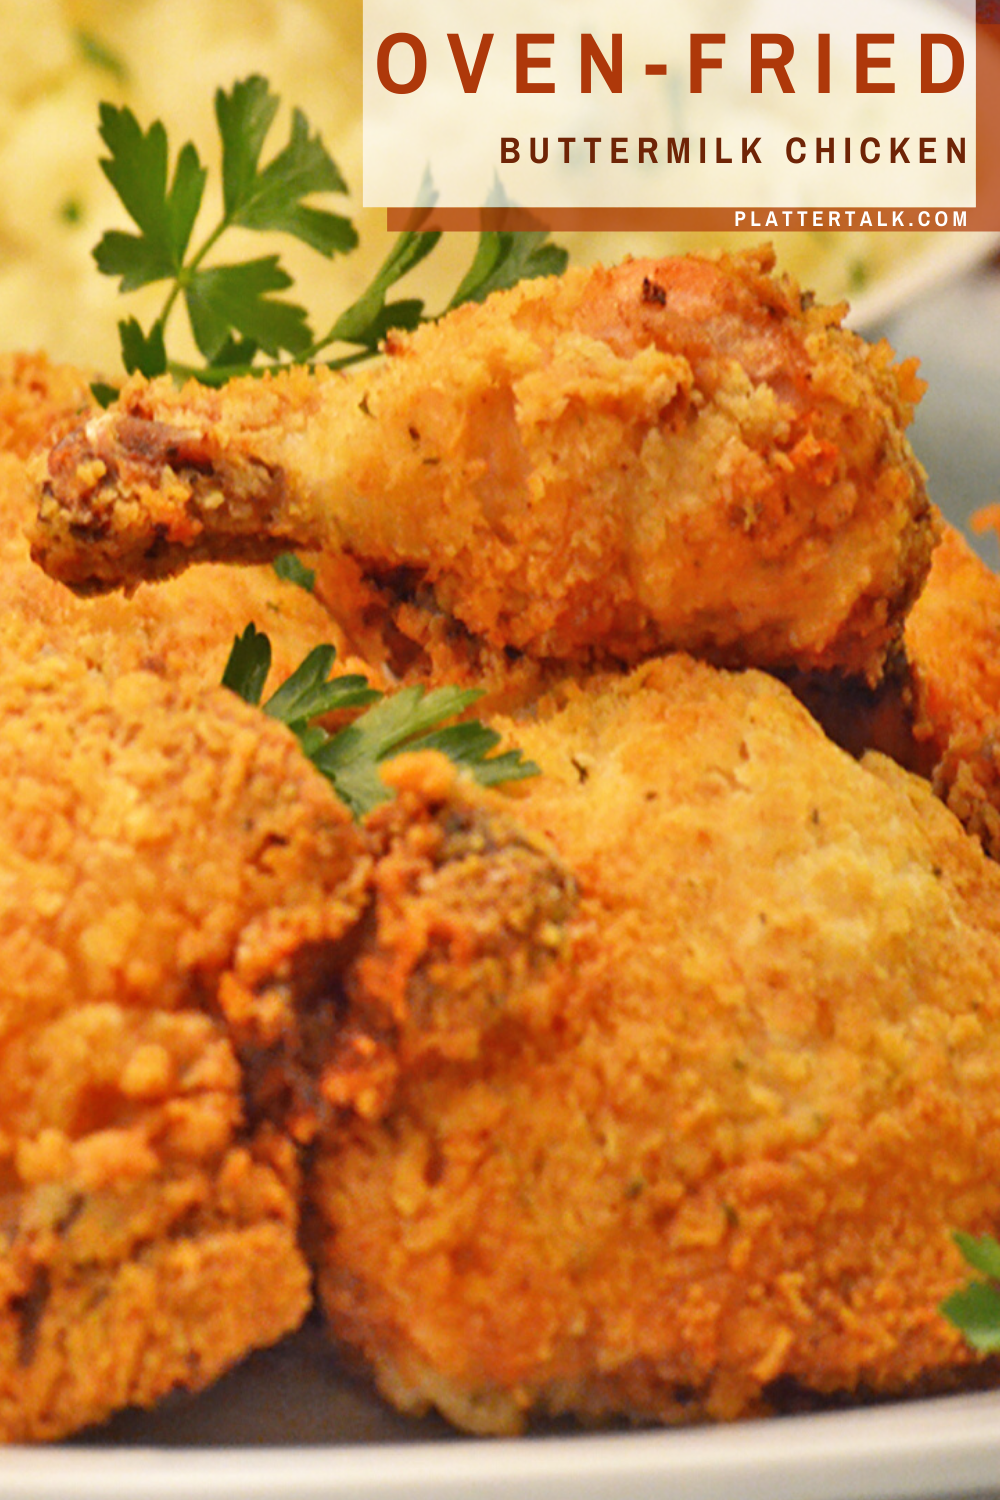 Oven Fried Buttermilk Chicken Recipe In 2020 Favorite Recipes Chicken Easy Chicken Recipes Easy Chicken Dinner Recipes